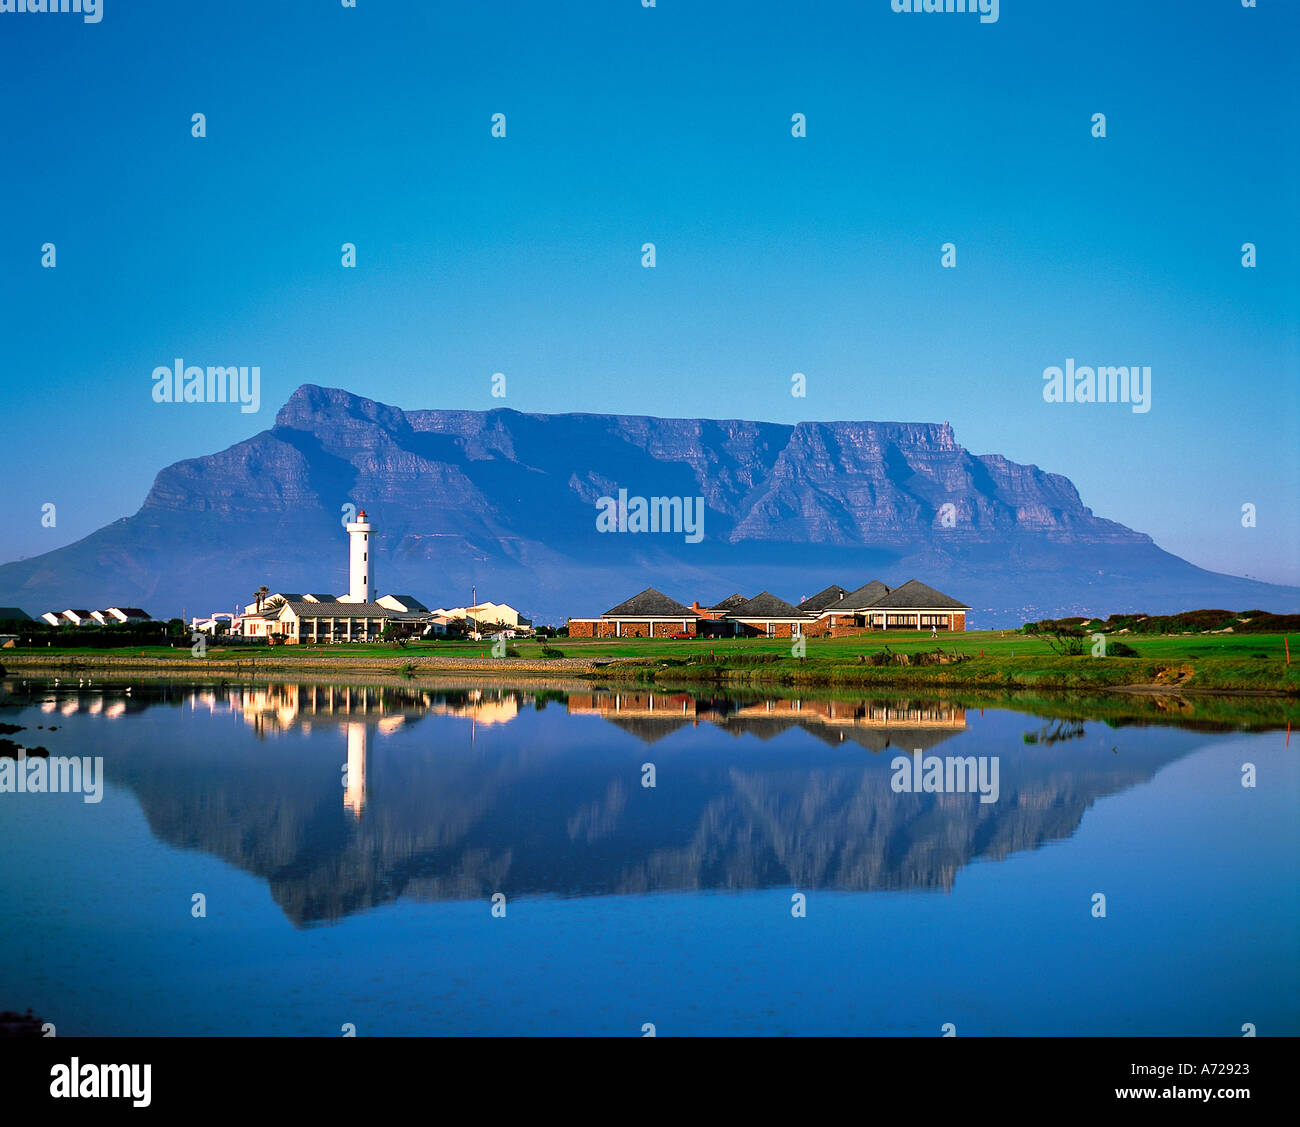 Table Mountain Kapstadt Provinz Western Cape Südafrika Stockbild